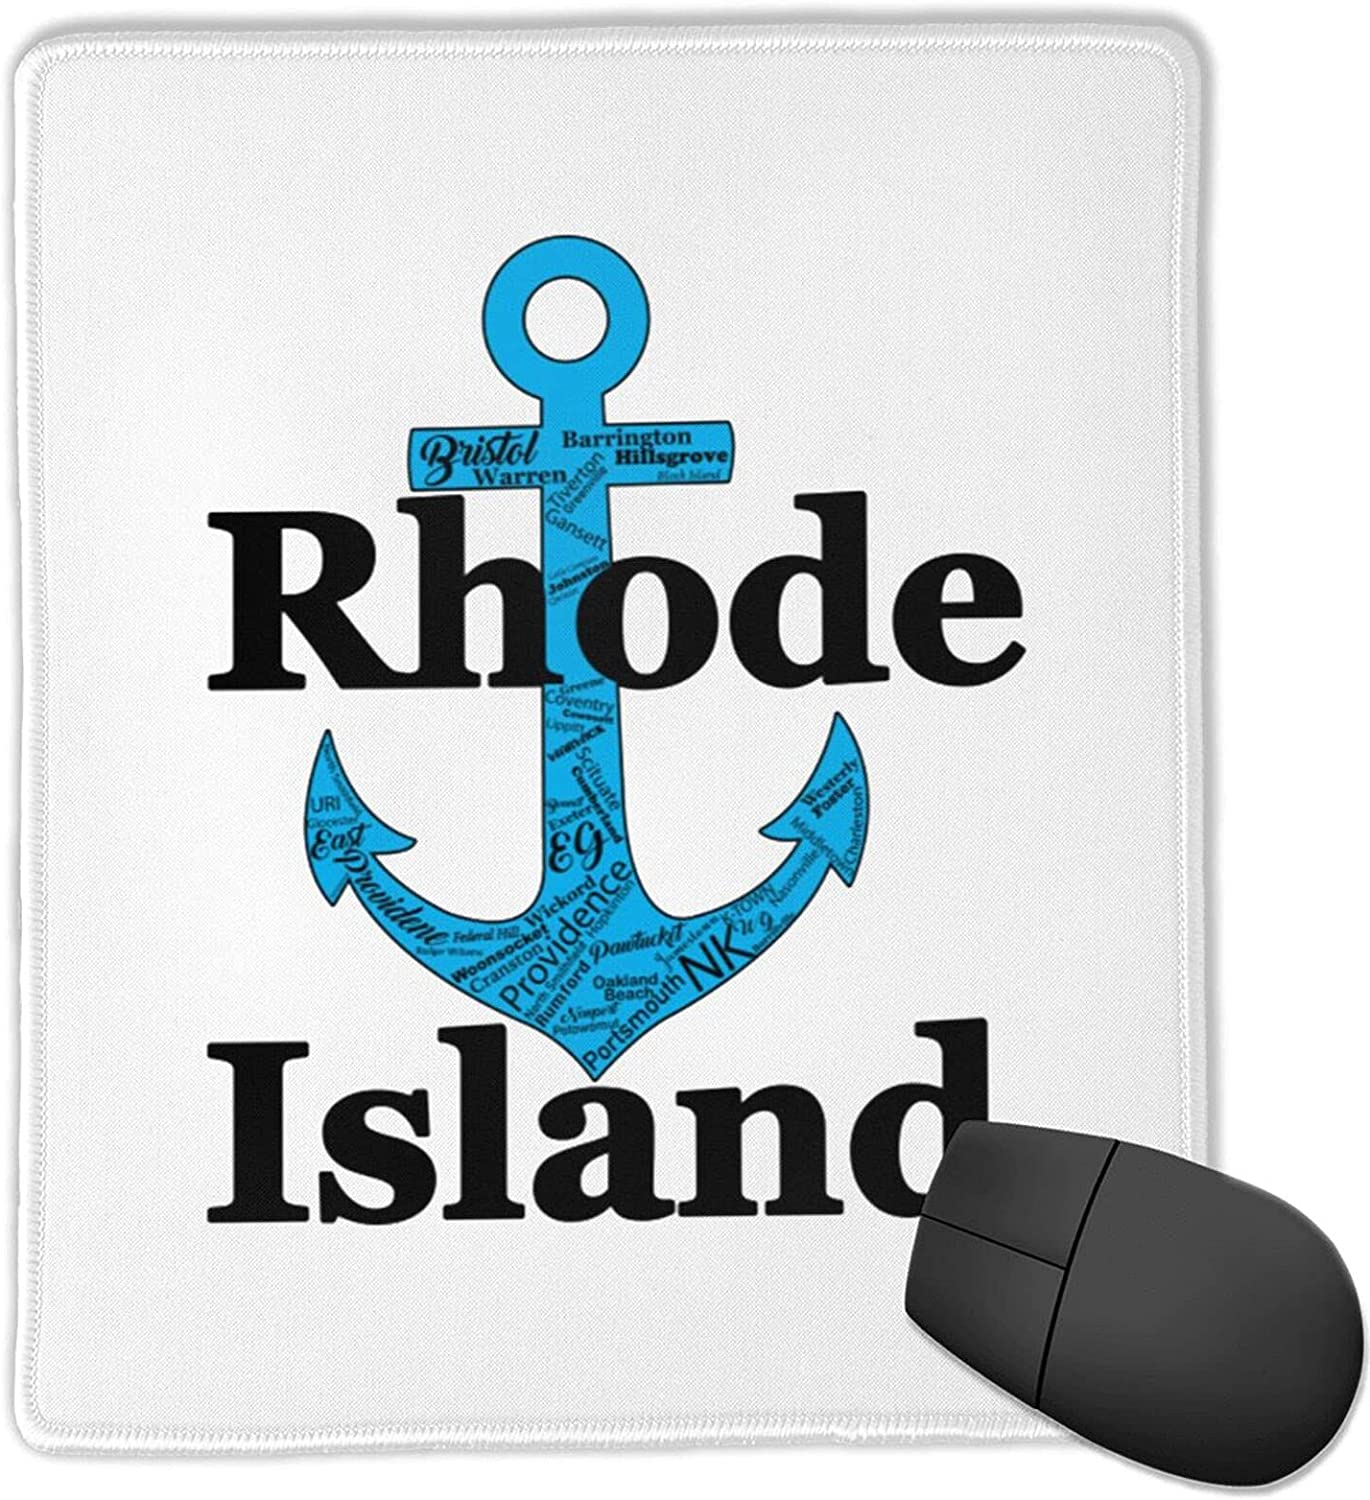 Max 51% OFF Rhode Island - Ocean State 25x30 Mouse wit Vertical Chicago Mall Pad Rubber